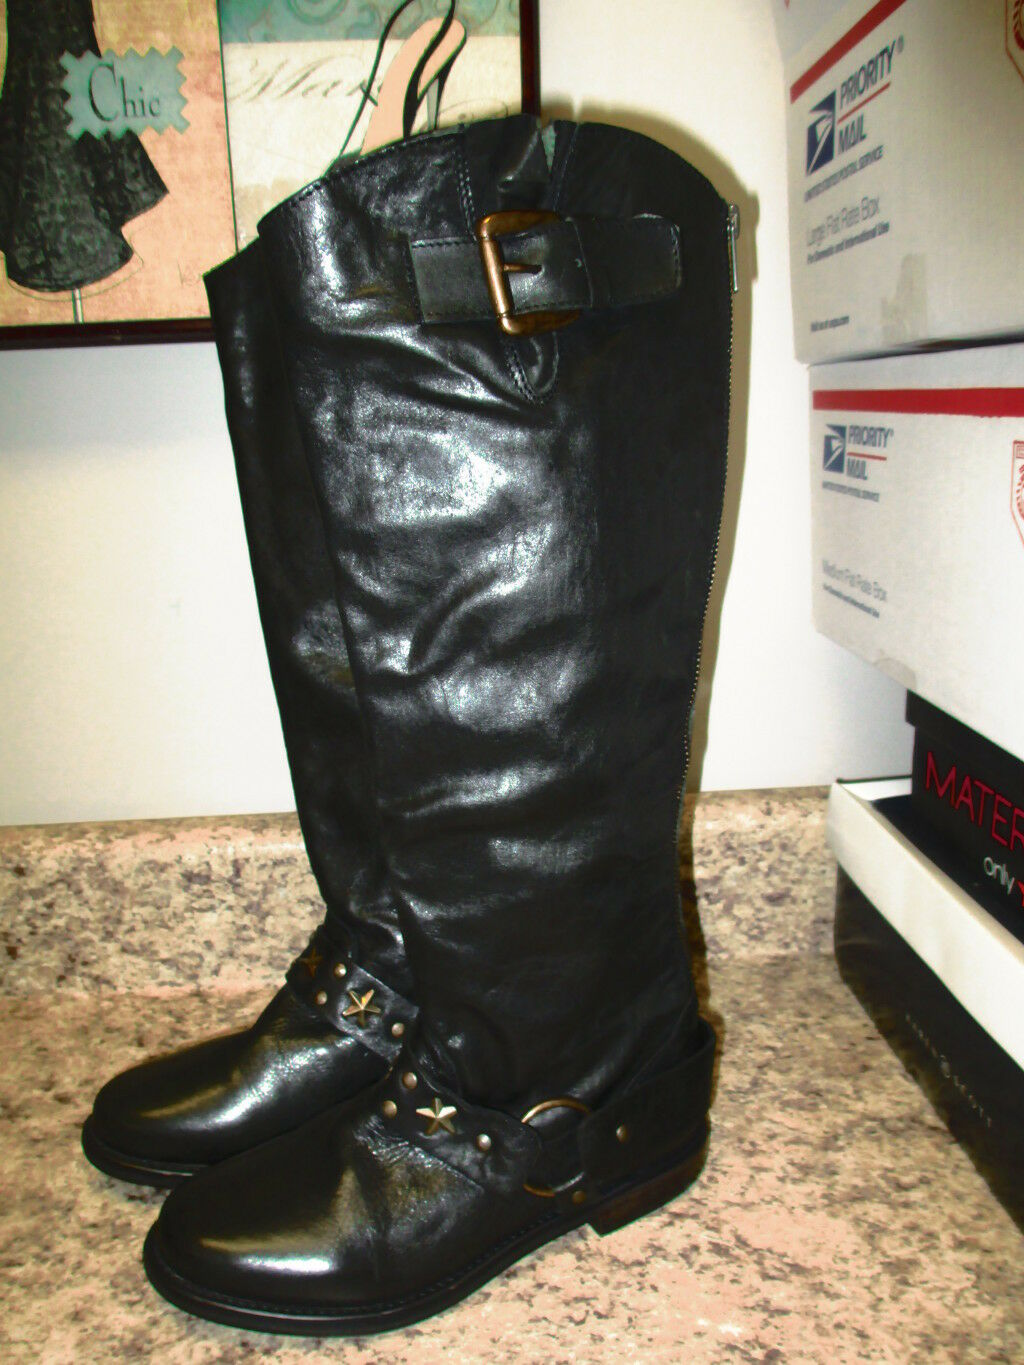 Betsey Johnson Leigh Riding Boots 6 M Black Leather  New Floor Sample